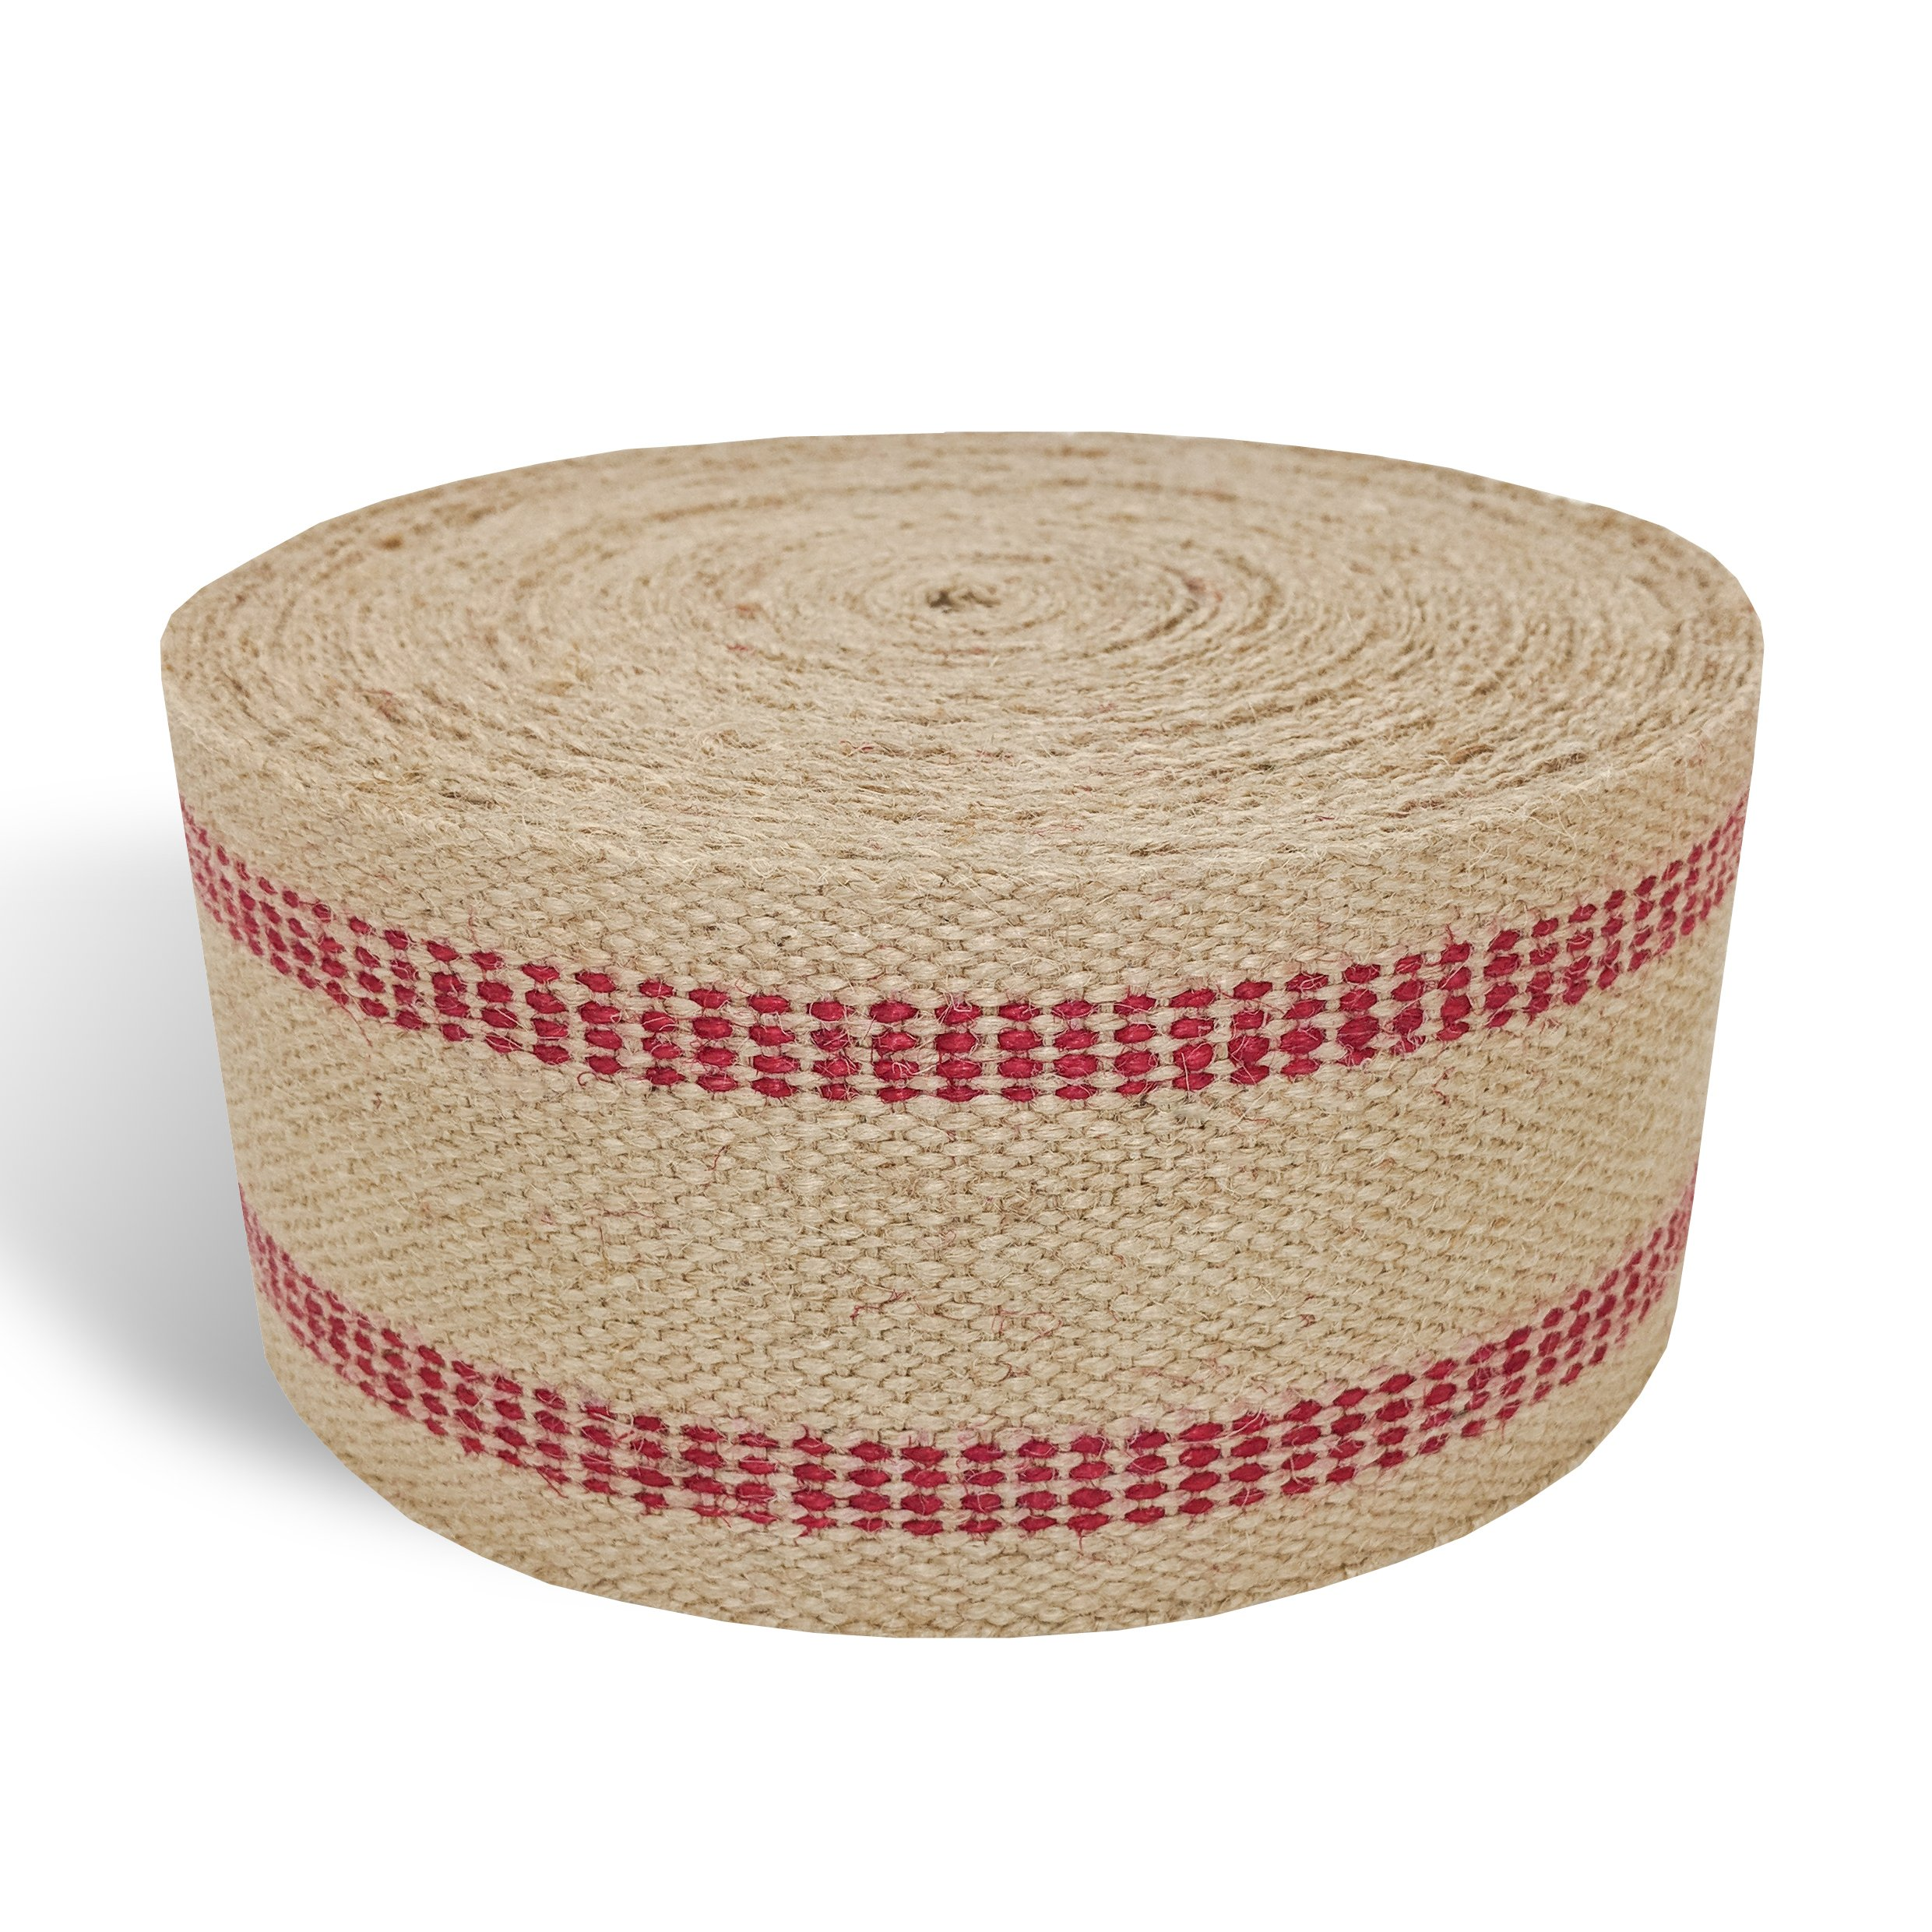 Red Upholstery Craft Jute Webbing, 11 lbs 3.5'' x 10Yd and 20 Yd Rolls (20 yd) by Wholesale Upholstery Supply (Image #3)